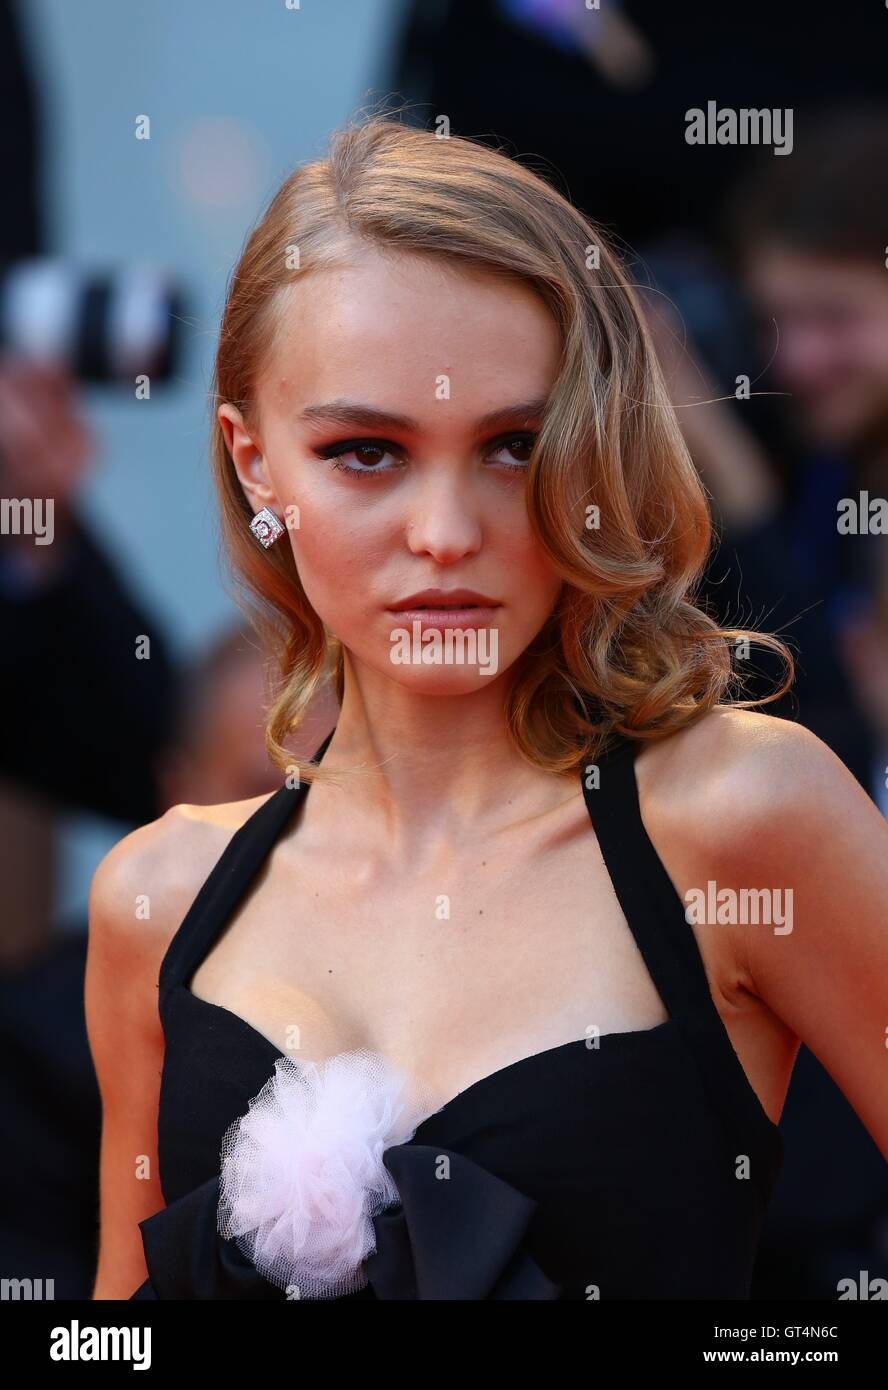 29f75b4e004f Actress Lily-Rose Depp arrives for the Premiere of movie